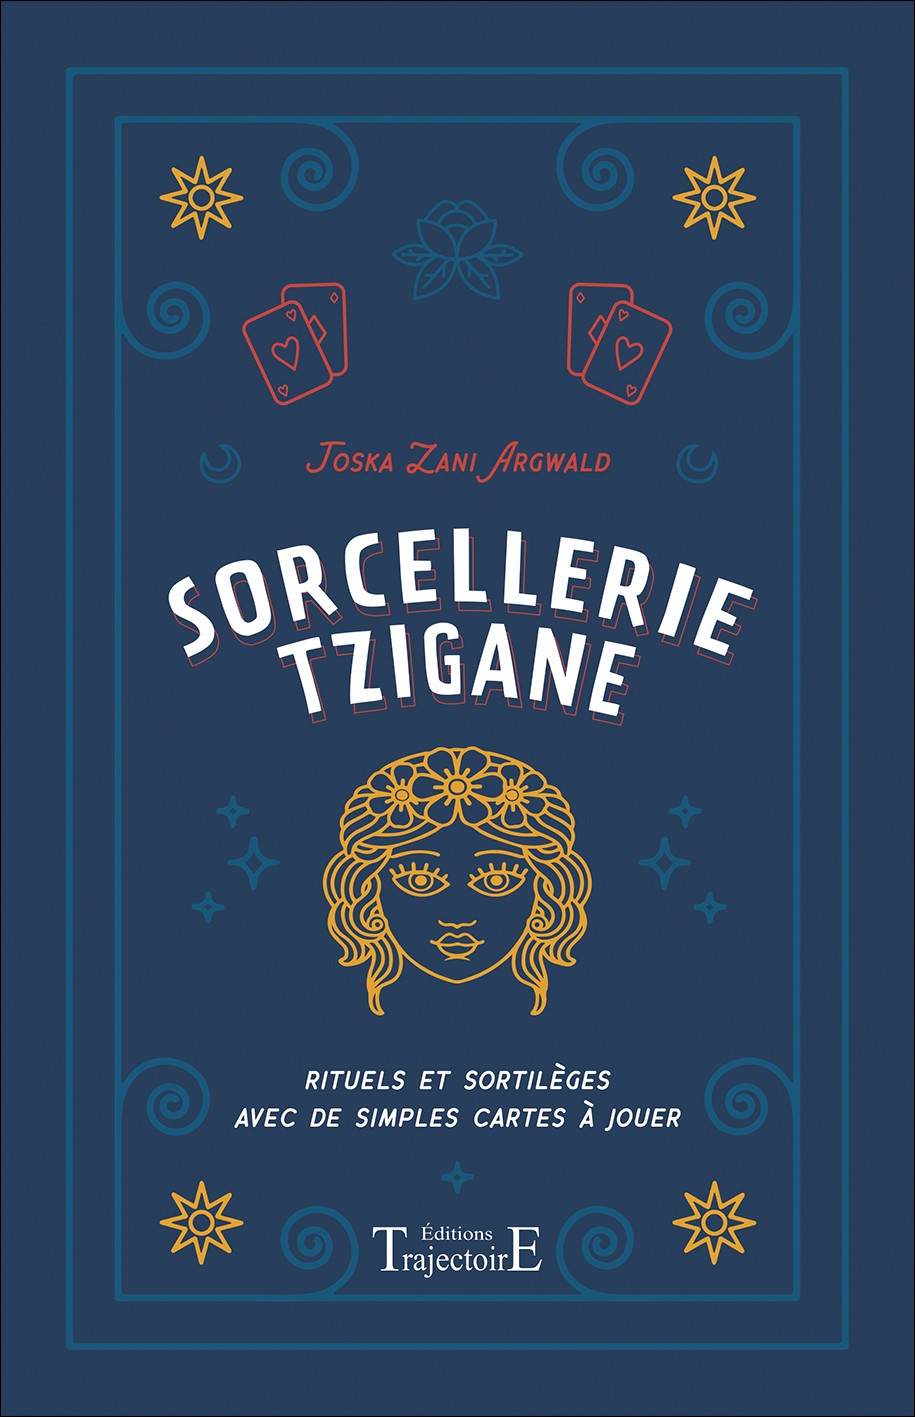 Sorcellerie tzigane